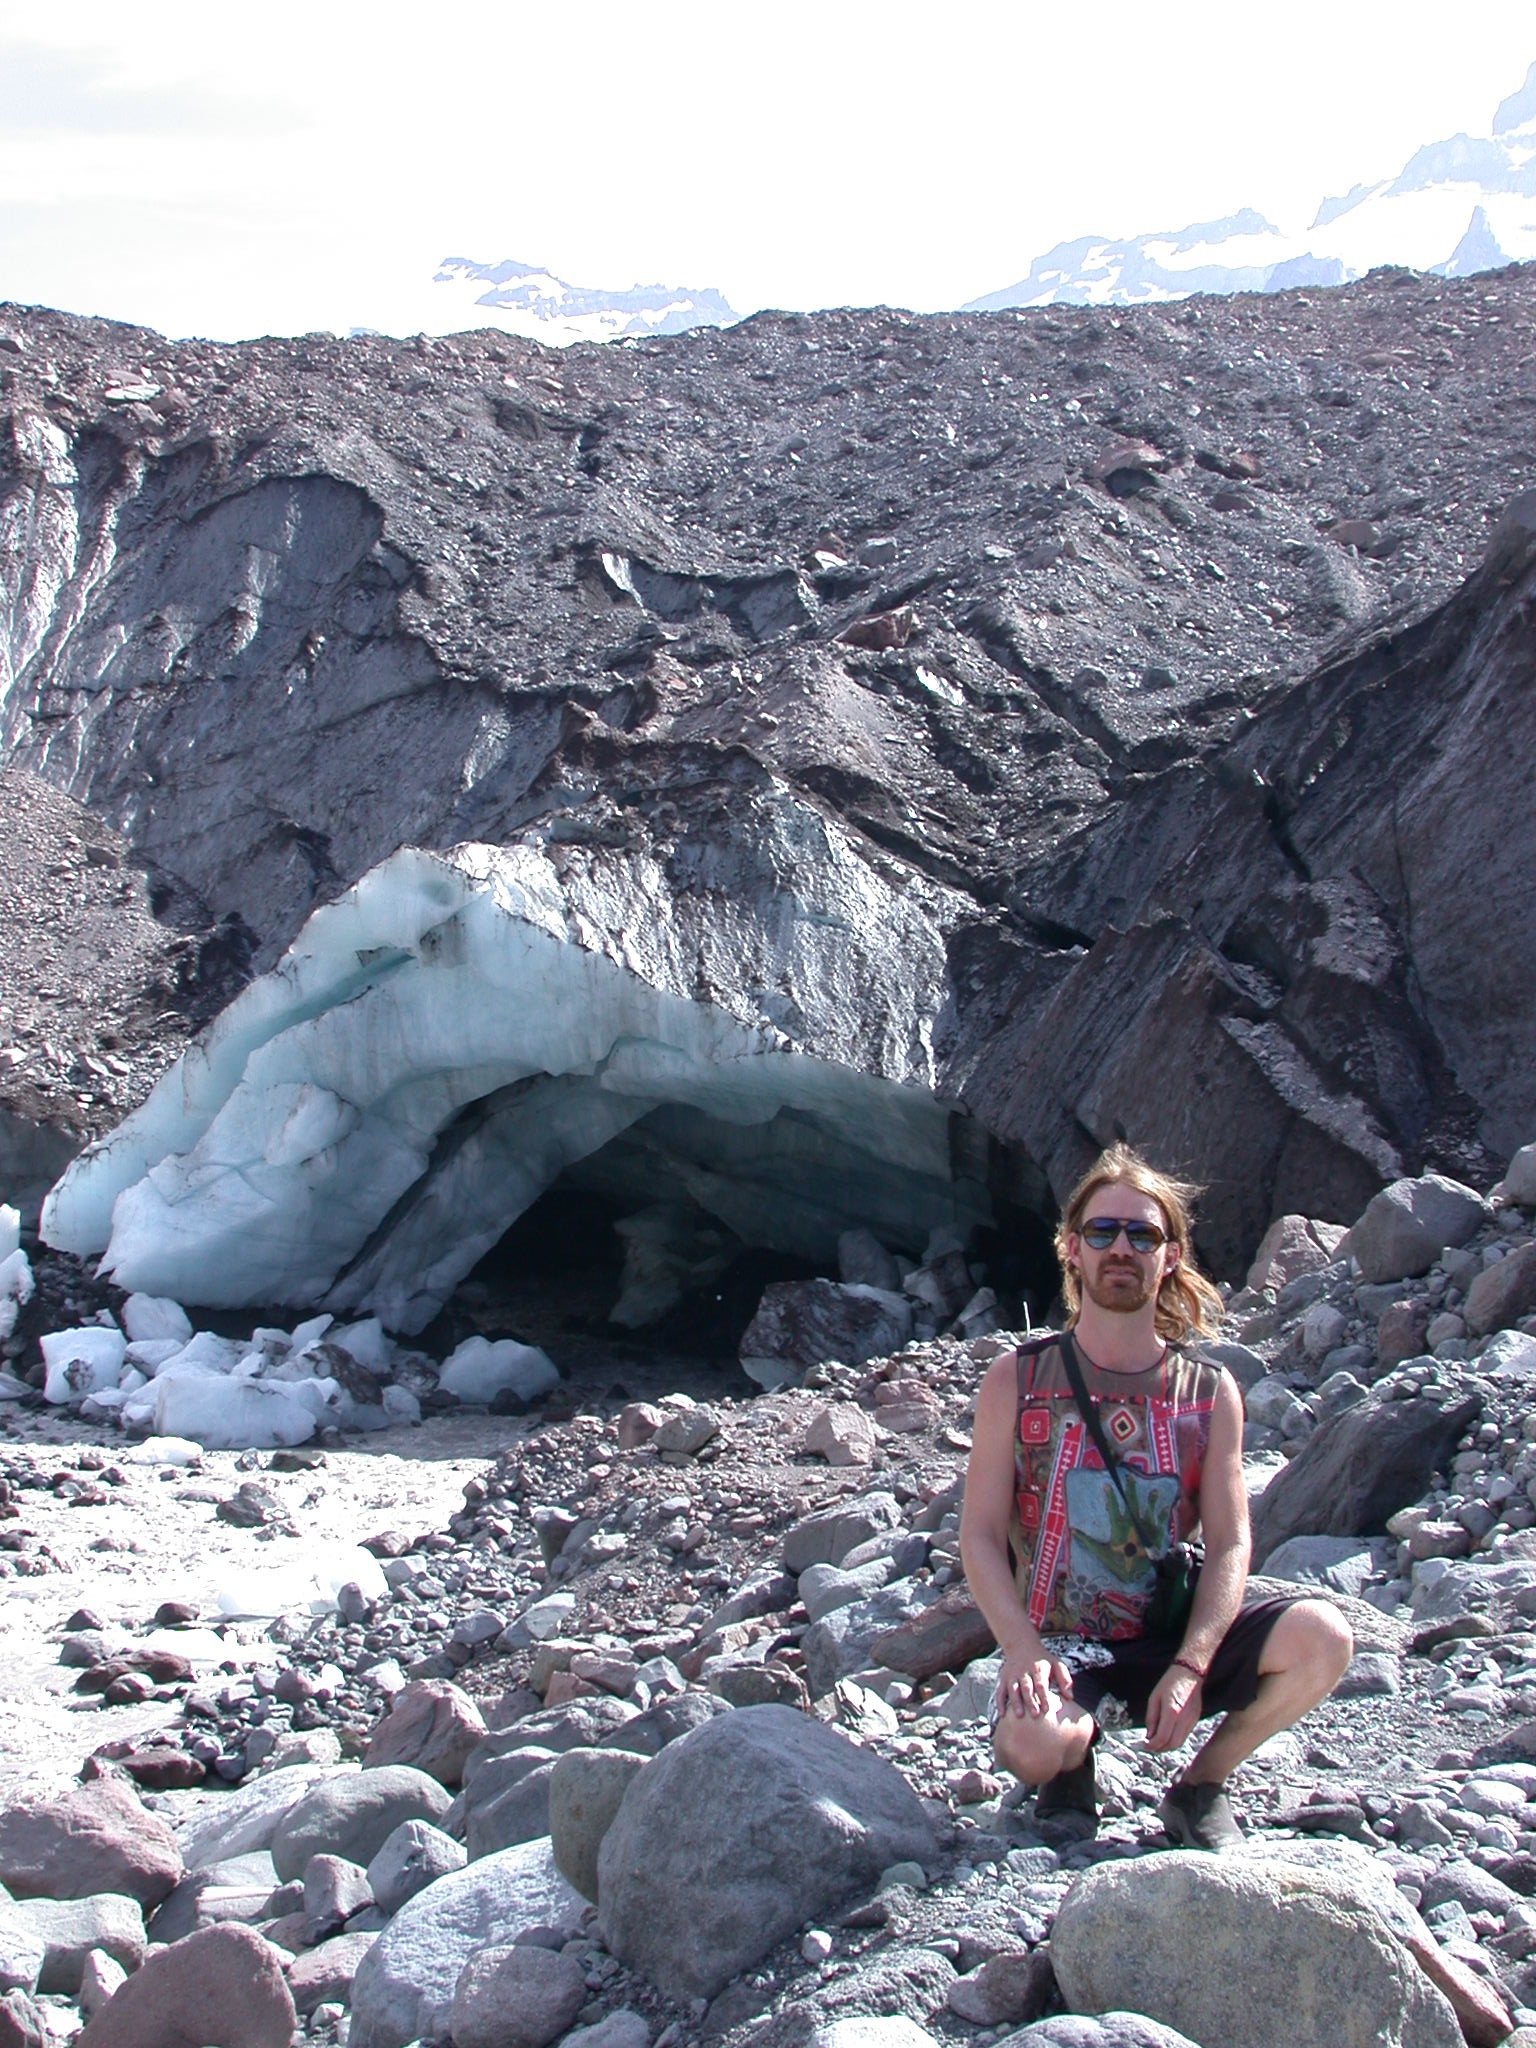 Stardust in Front of Ice Cave at Base of Glacier on Mount Rainier